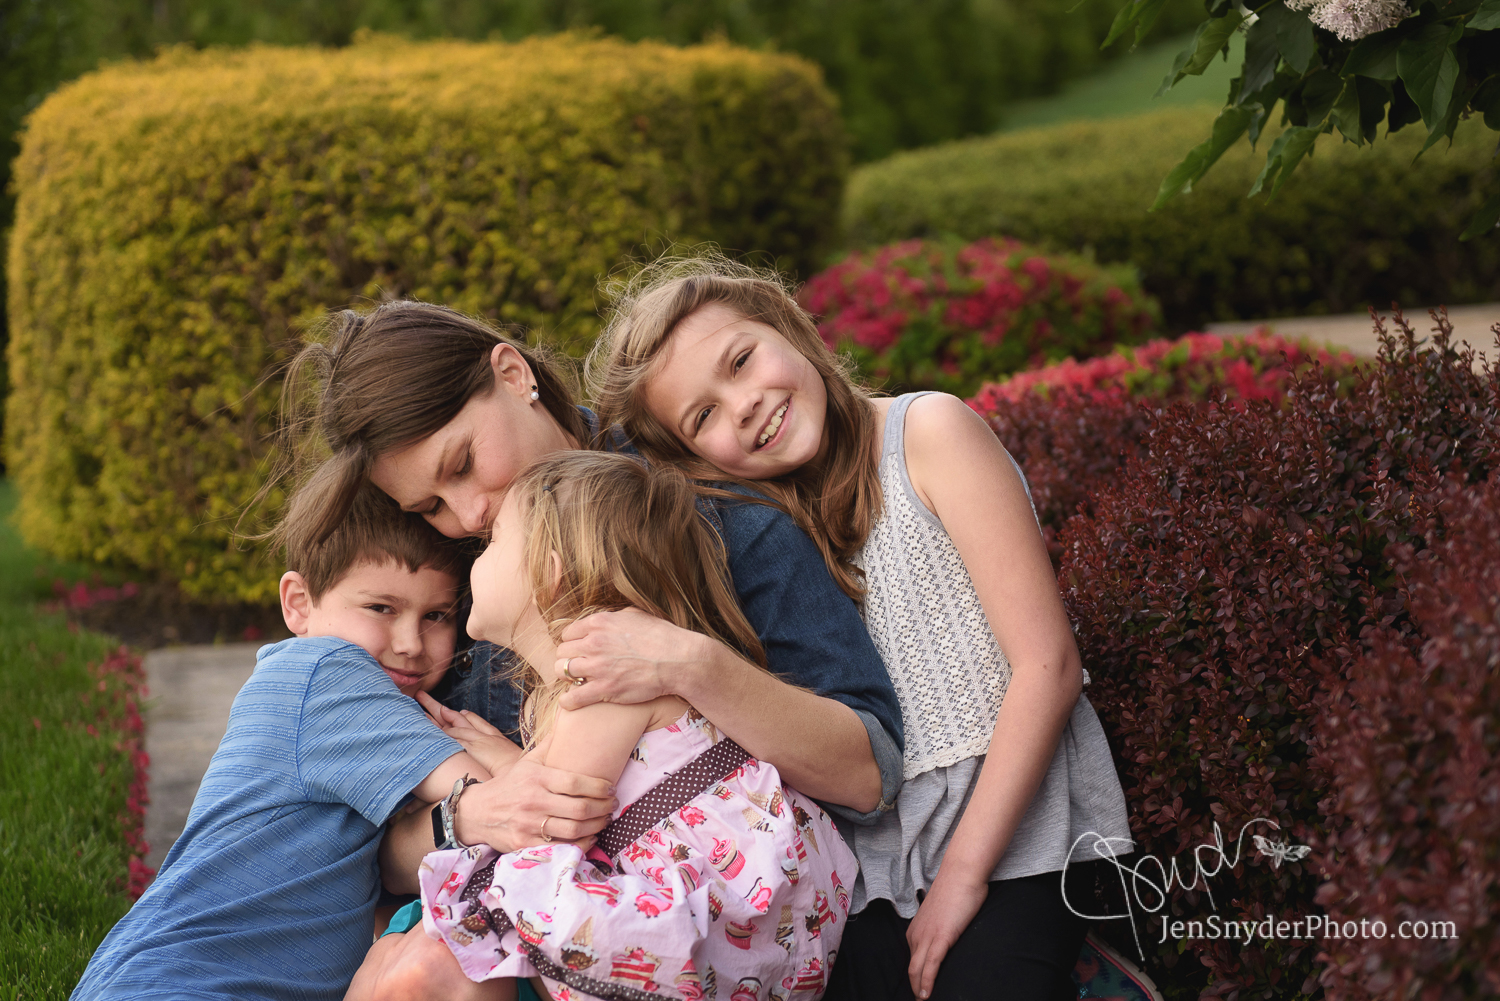 Baltimore MD lifestyle candid childrens photographer Jen Snyder http://www.jensnyderphoto.com